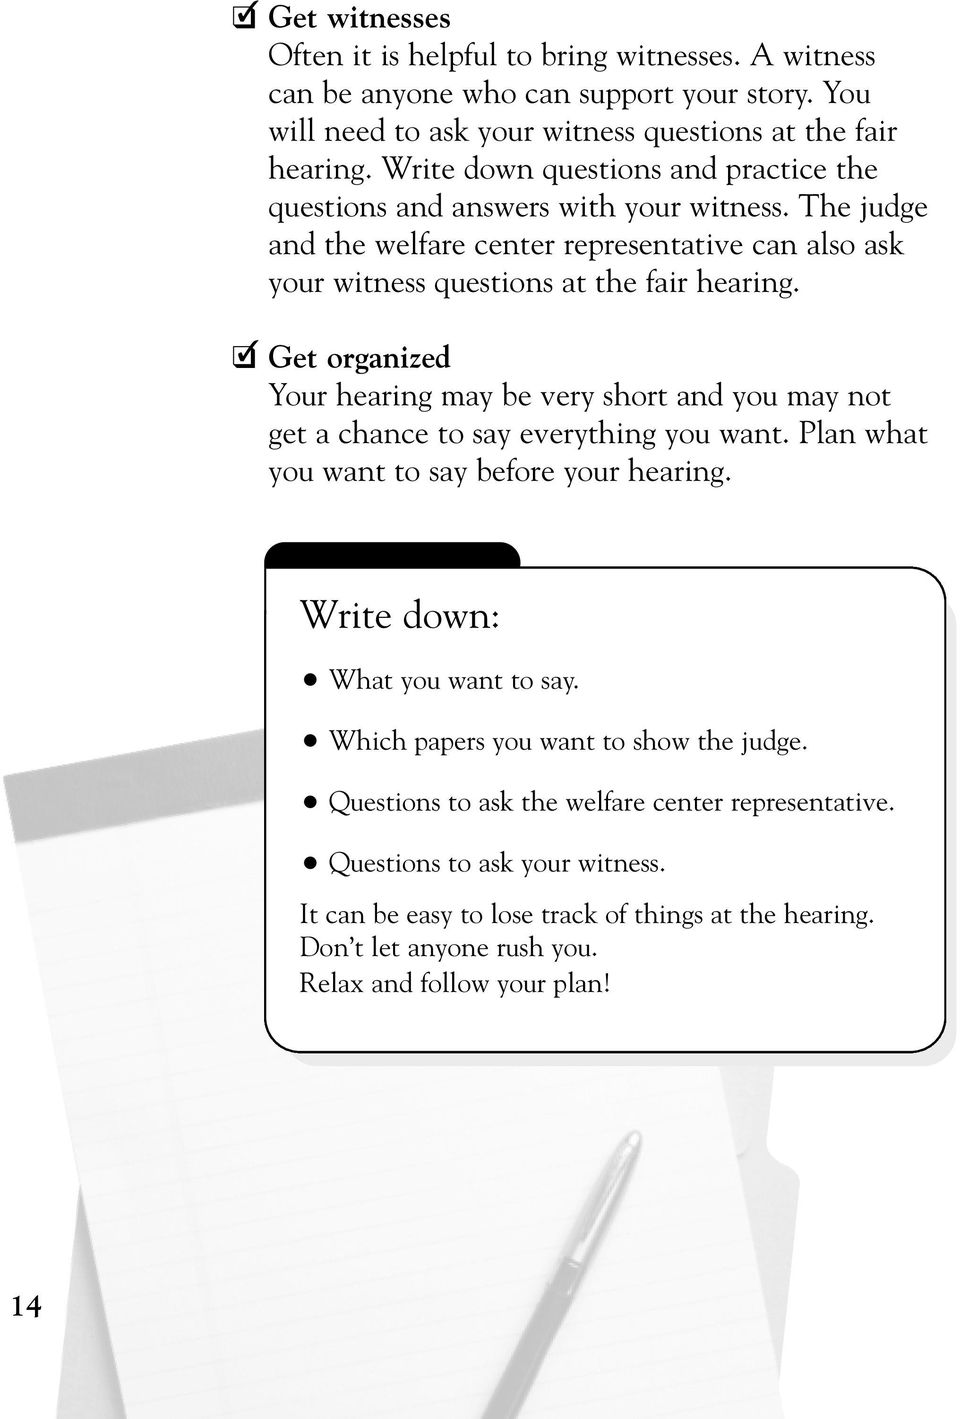 Get organized Your hearing may be very short and you may not get a chance to say everything you want. Plan what you want to say before your hearing. Write down: What you want to say.